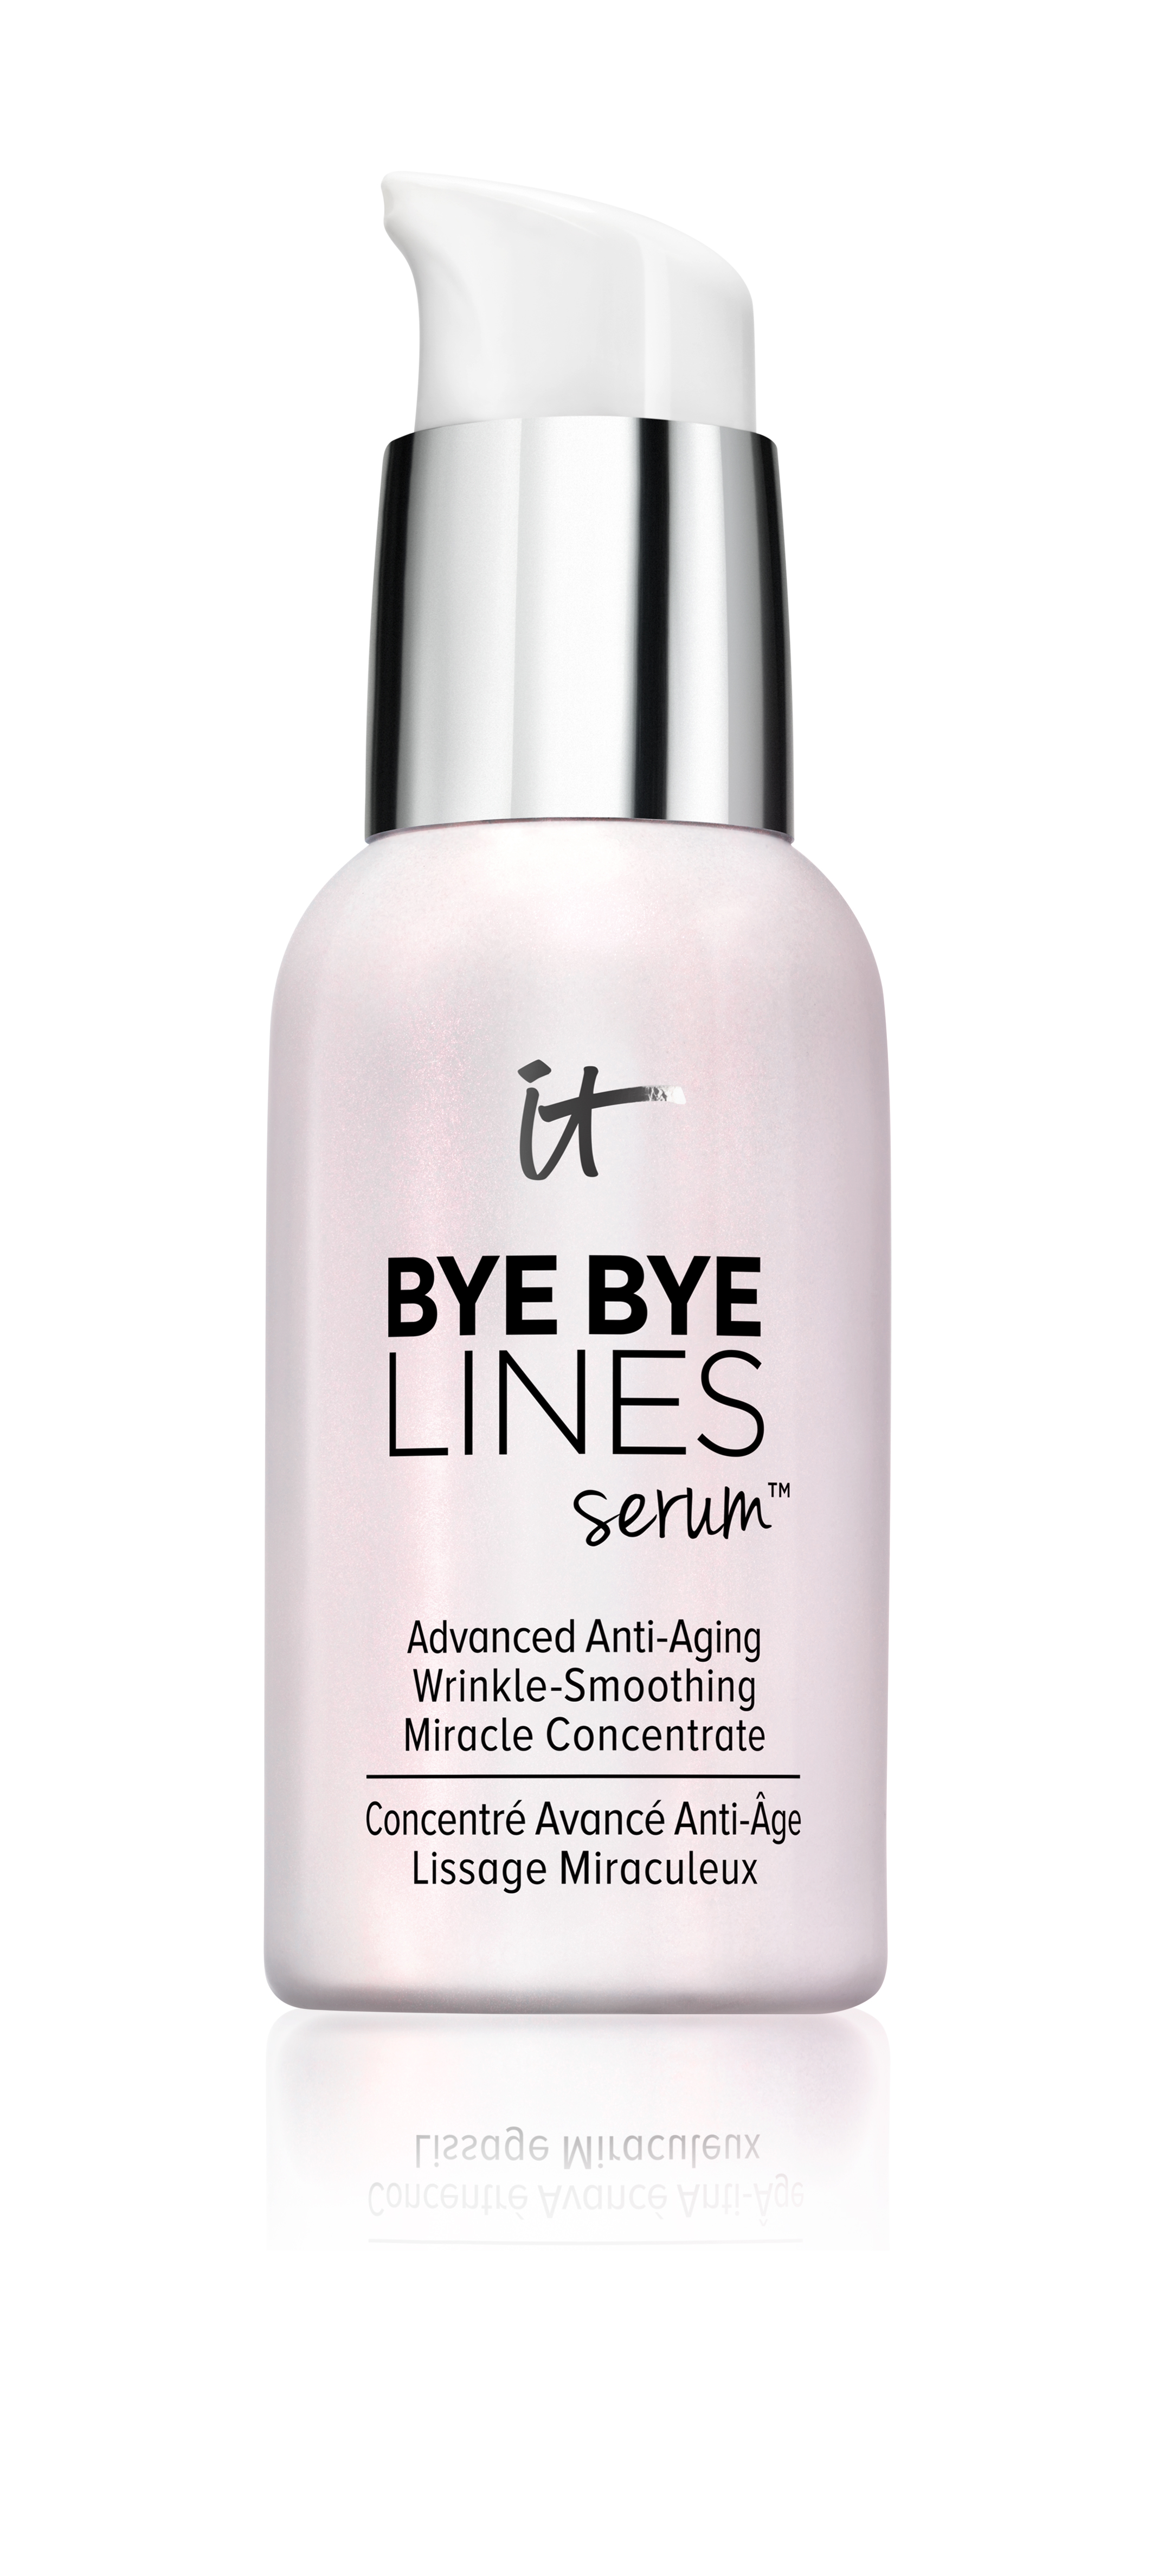 IT Cosmetics Bye Bye Lines Serum (IT Cosmetics)